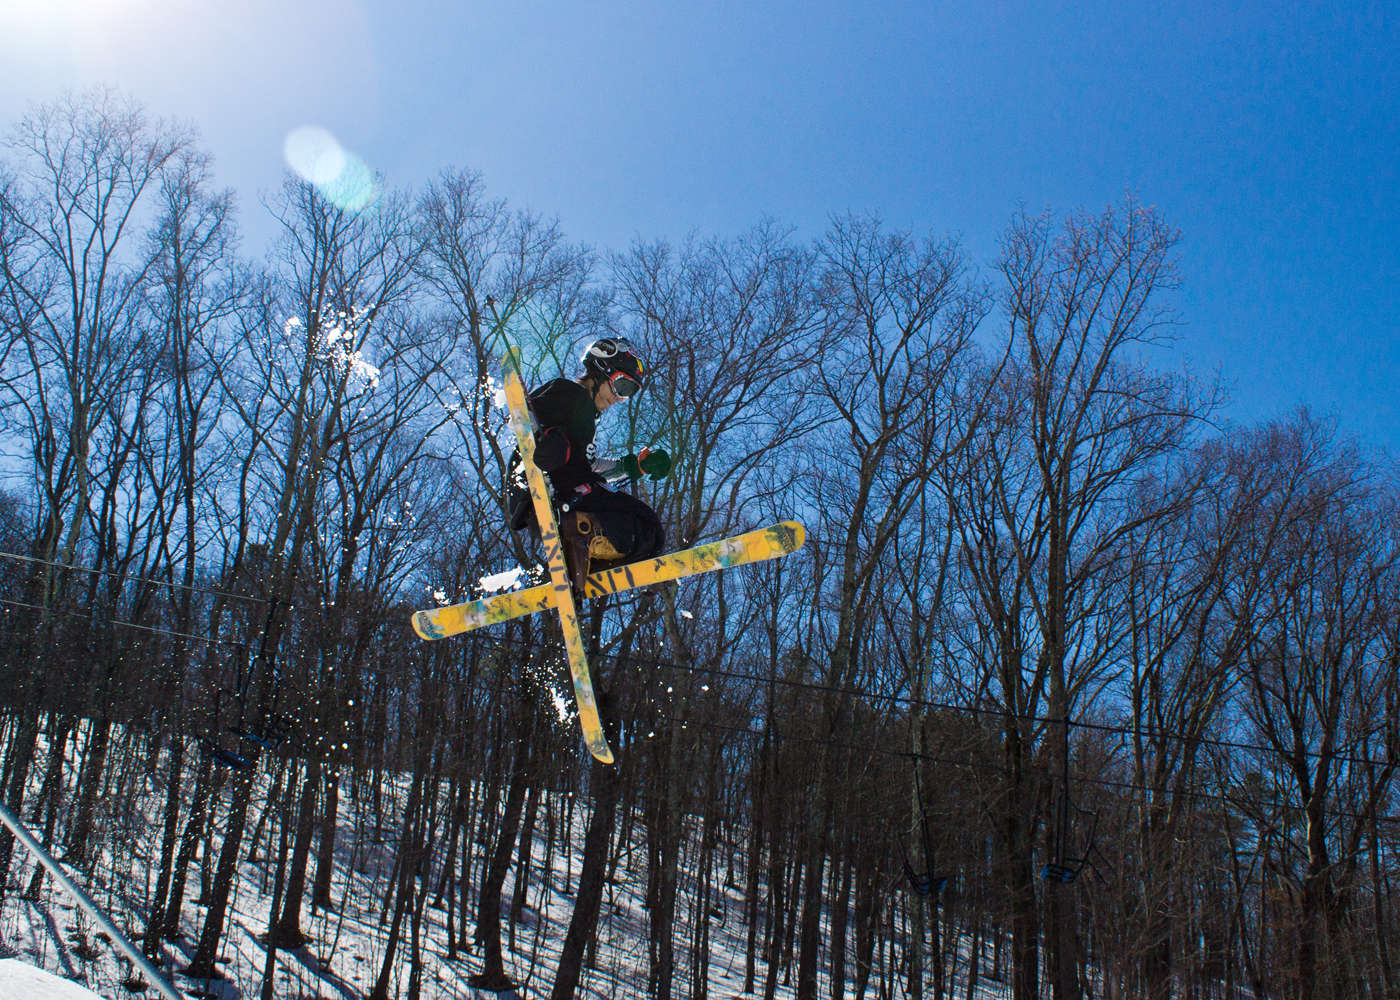 shawnee mountain ski area | east stroudsburg, pa 18301